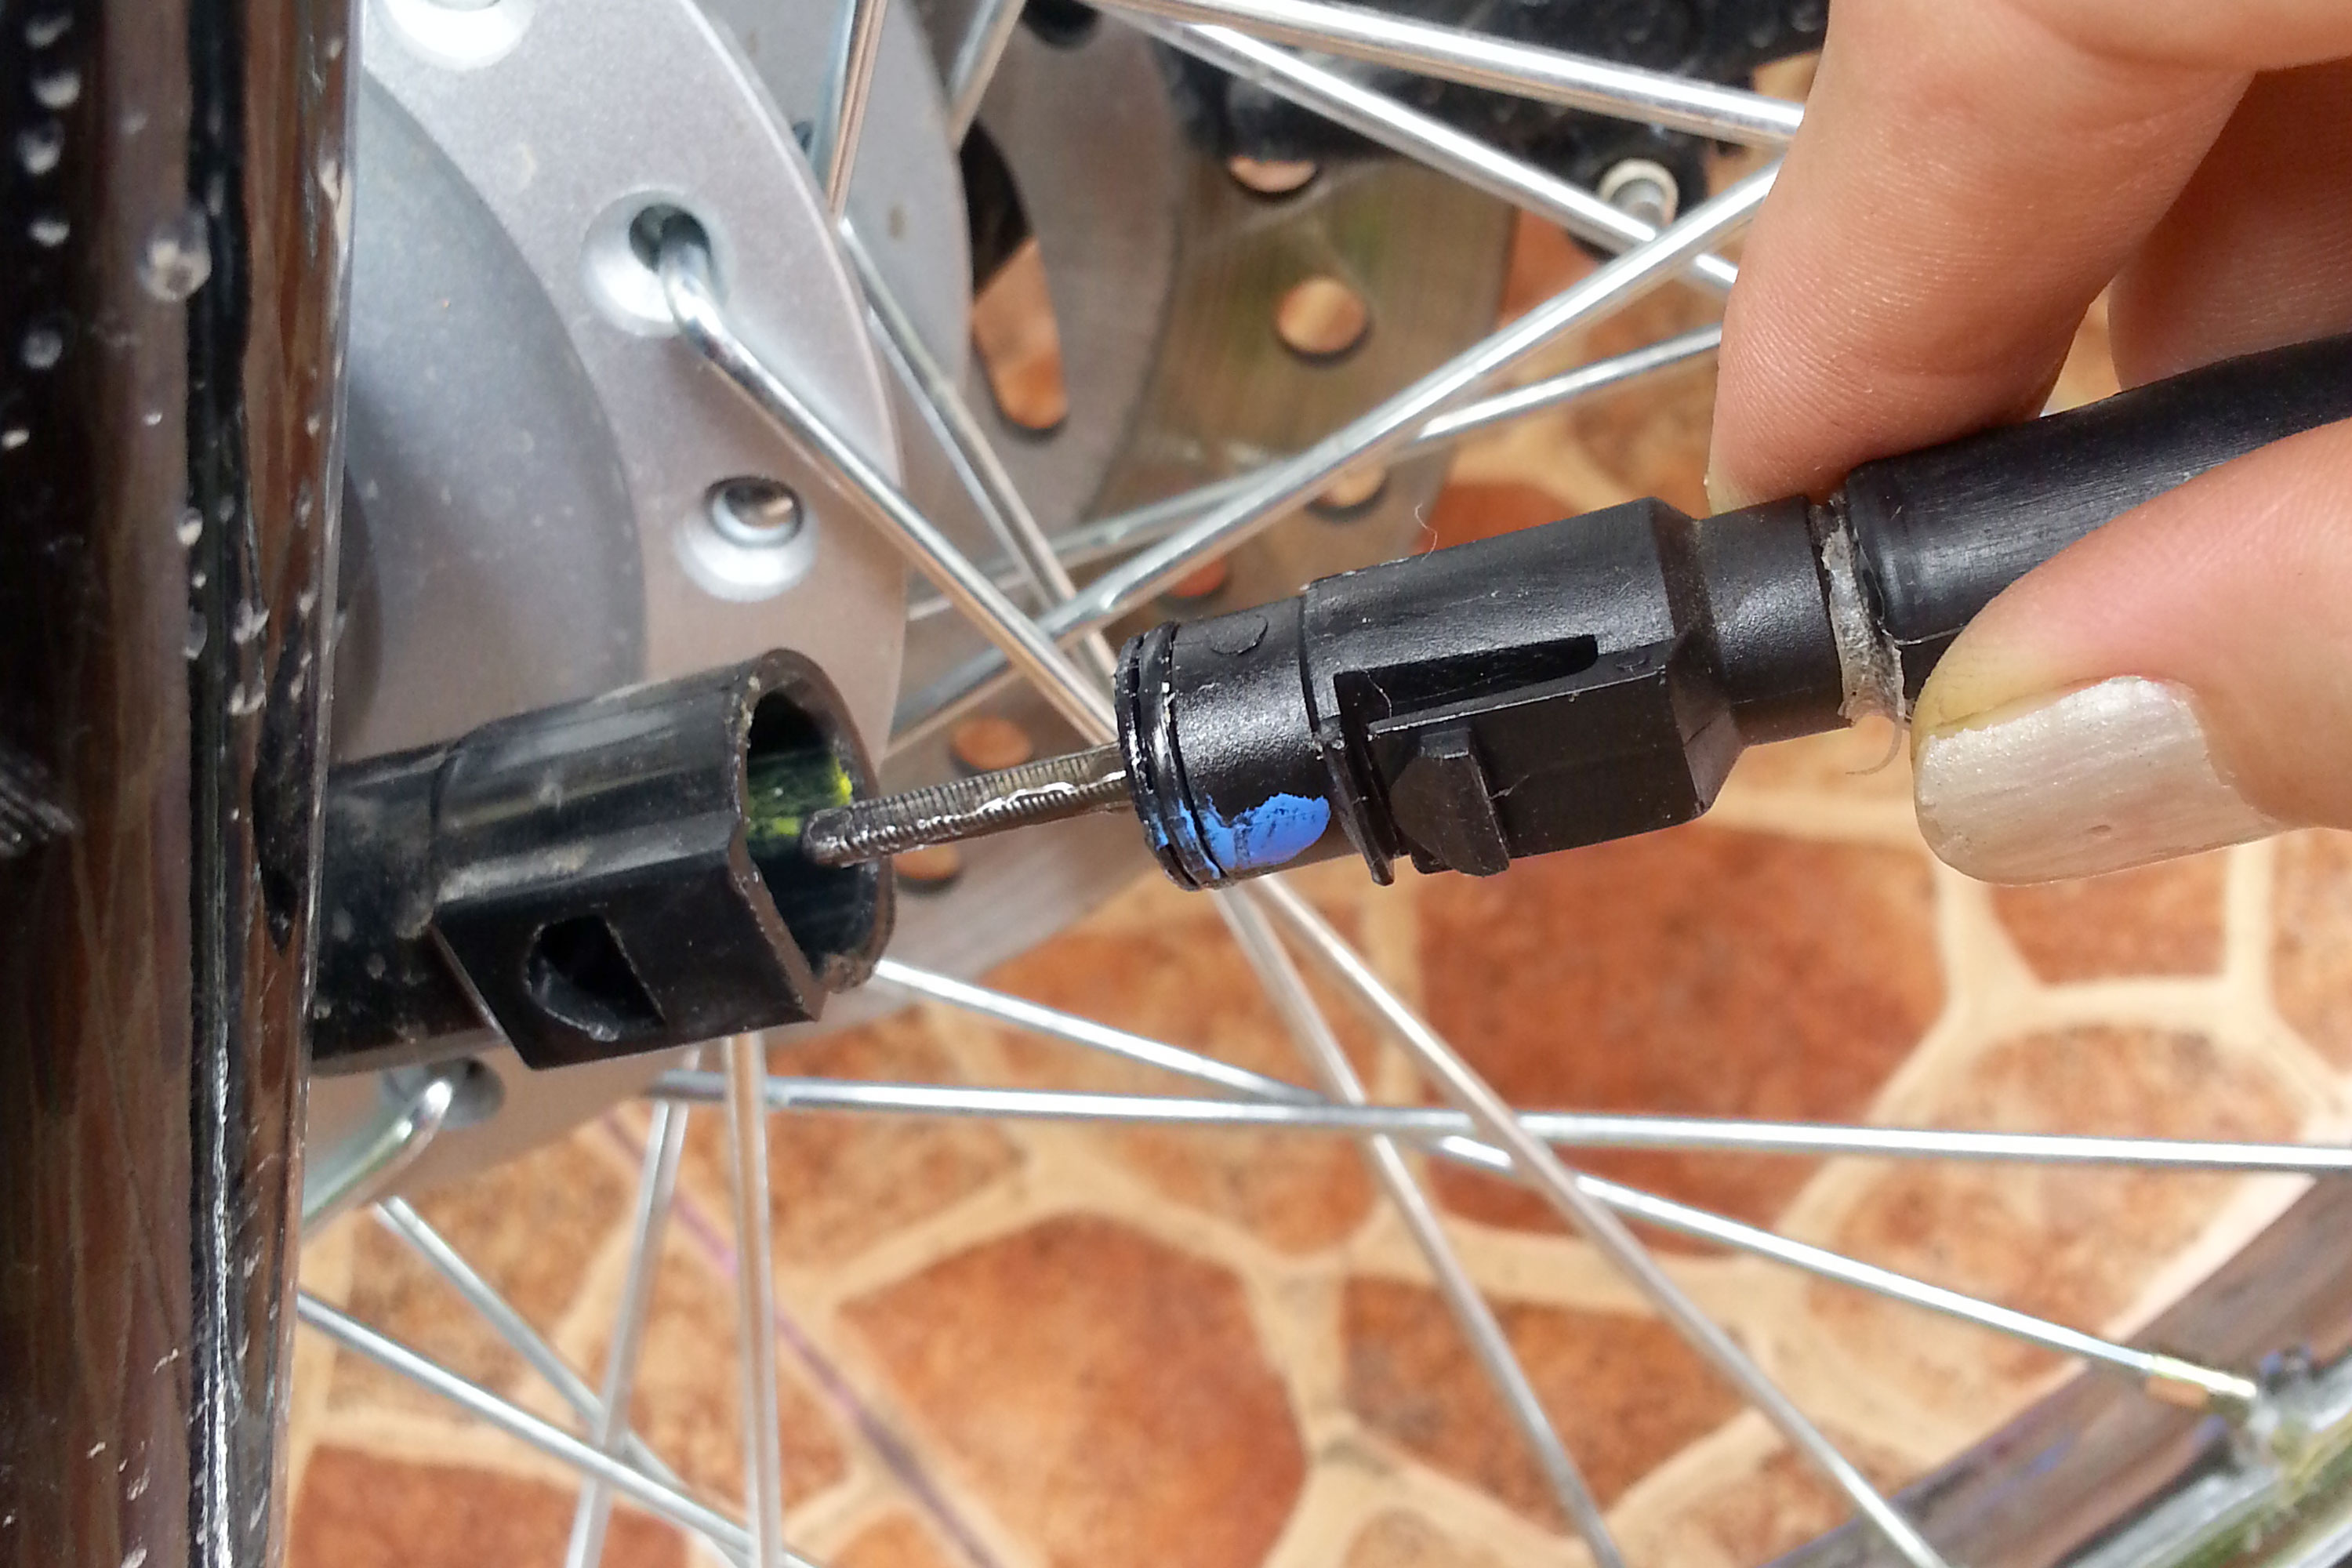 How To Repair A Motorcycles Speedometer Gone Outdoors Your Ct110 Trail Bike Wiring Diagram Locate The Lower End Of Cable Where It Attaches At Front Wheel Hub Use Small Metric Wrench Loosen Fitting That Connects